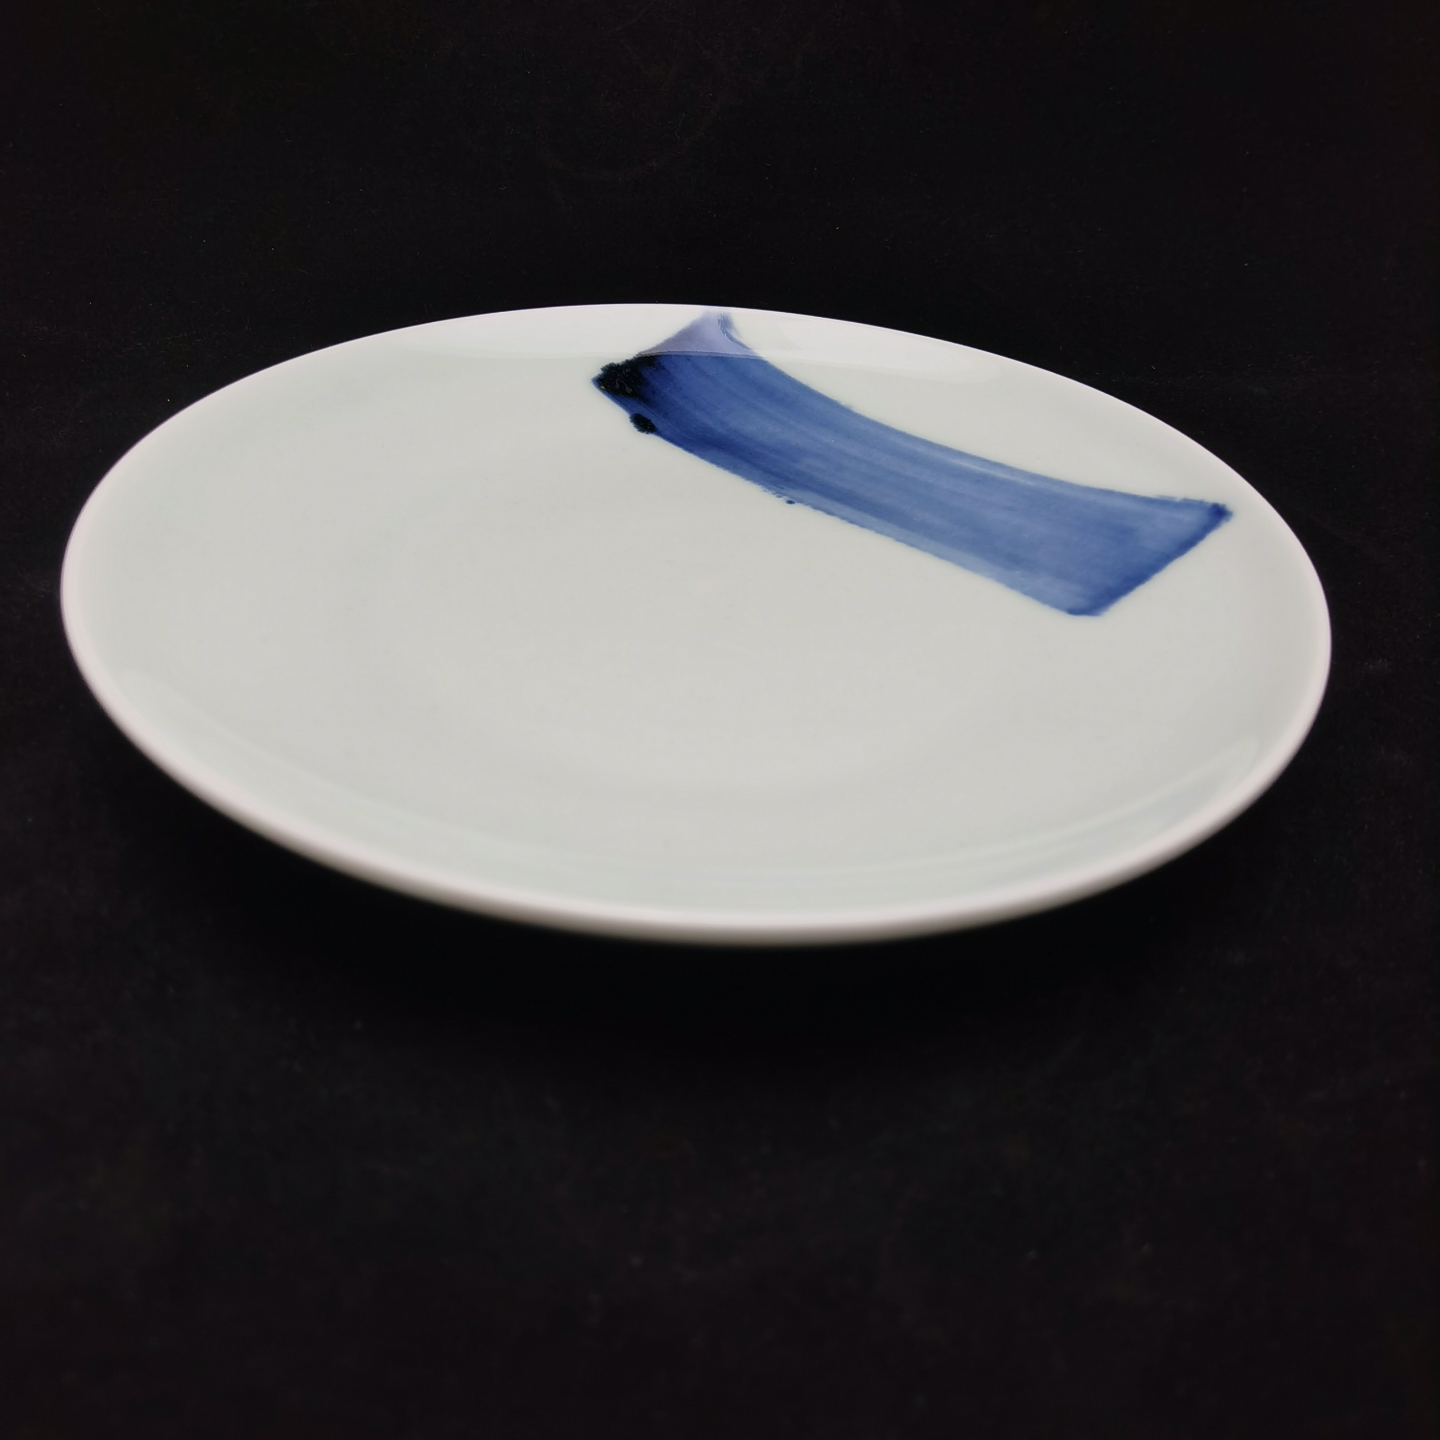 China Blue Brush Stroke Round Plate - (210mm)